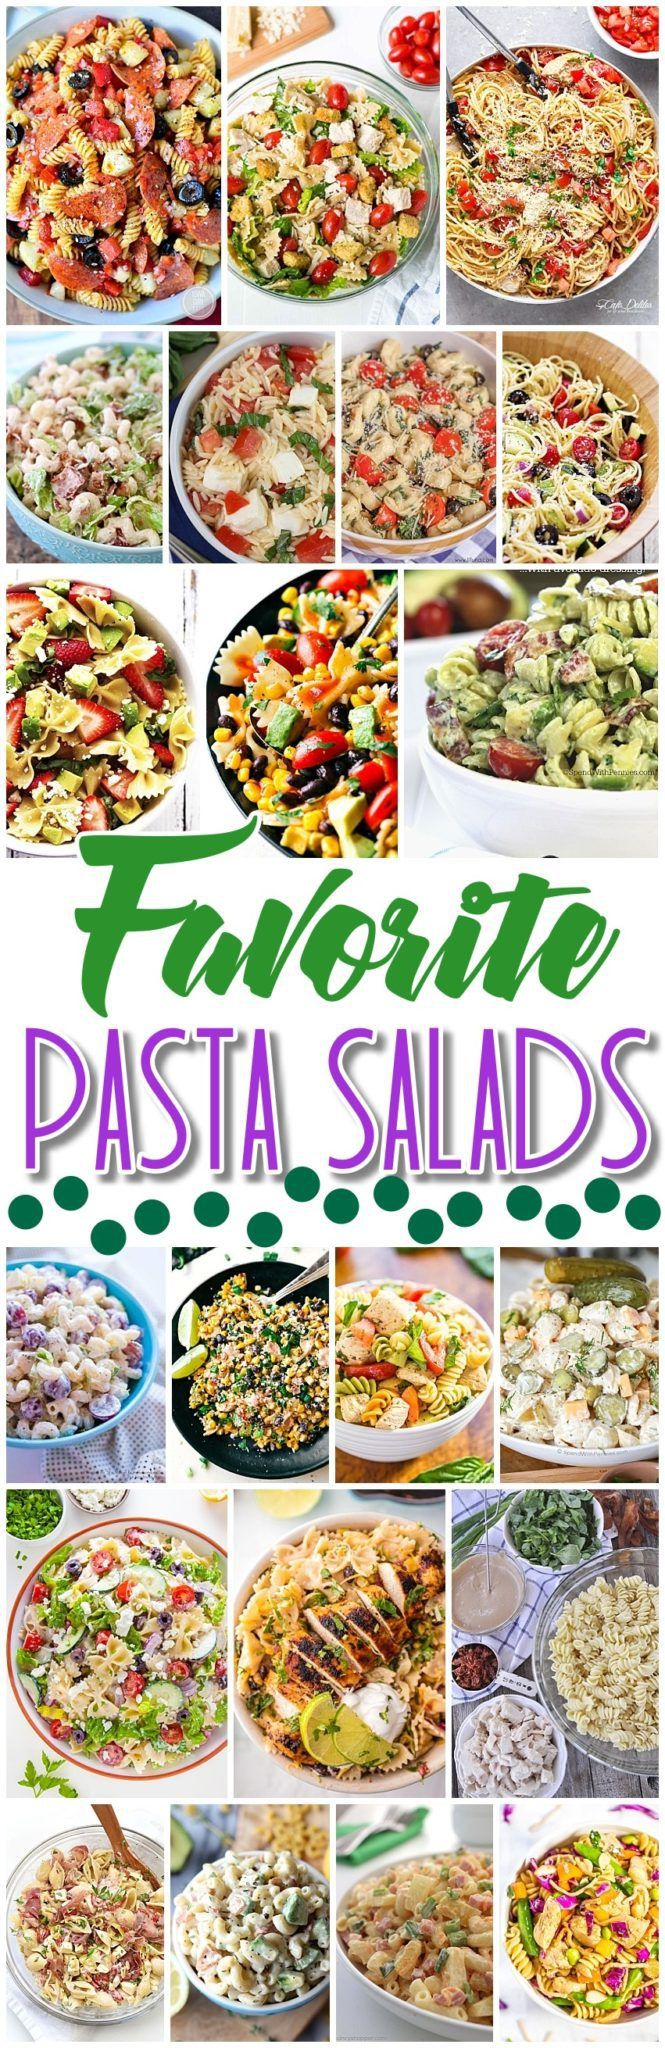 Easy Pasta Salad Recipes - The BEST Yummy Side Dishes for Barbecues, Potlucks and Summer Dinner Parties - Dreaming in DIY